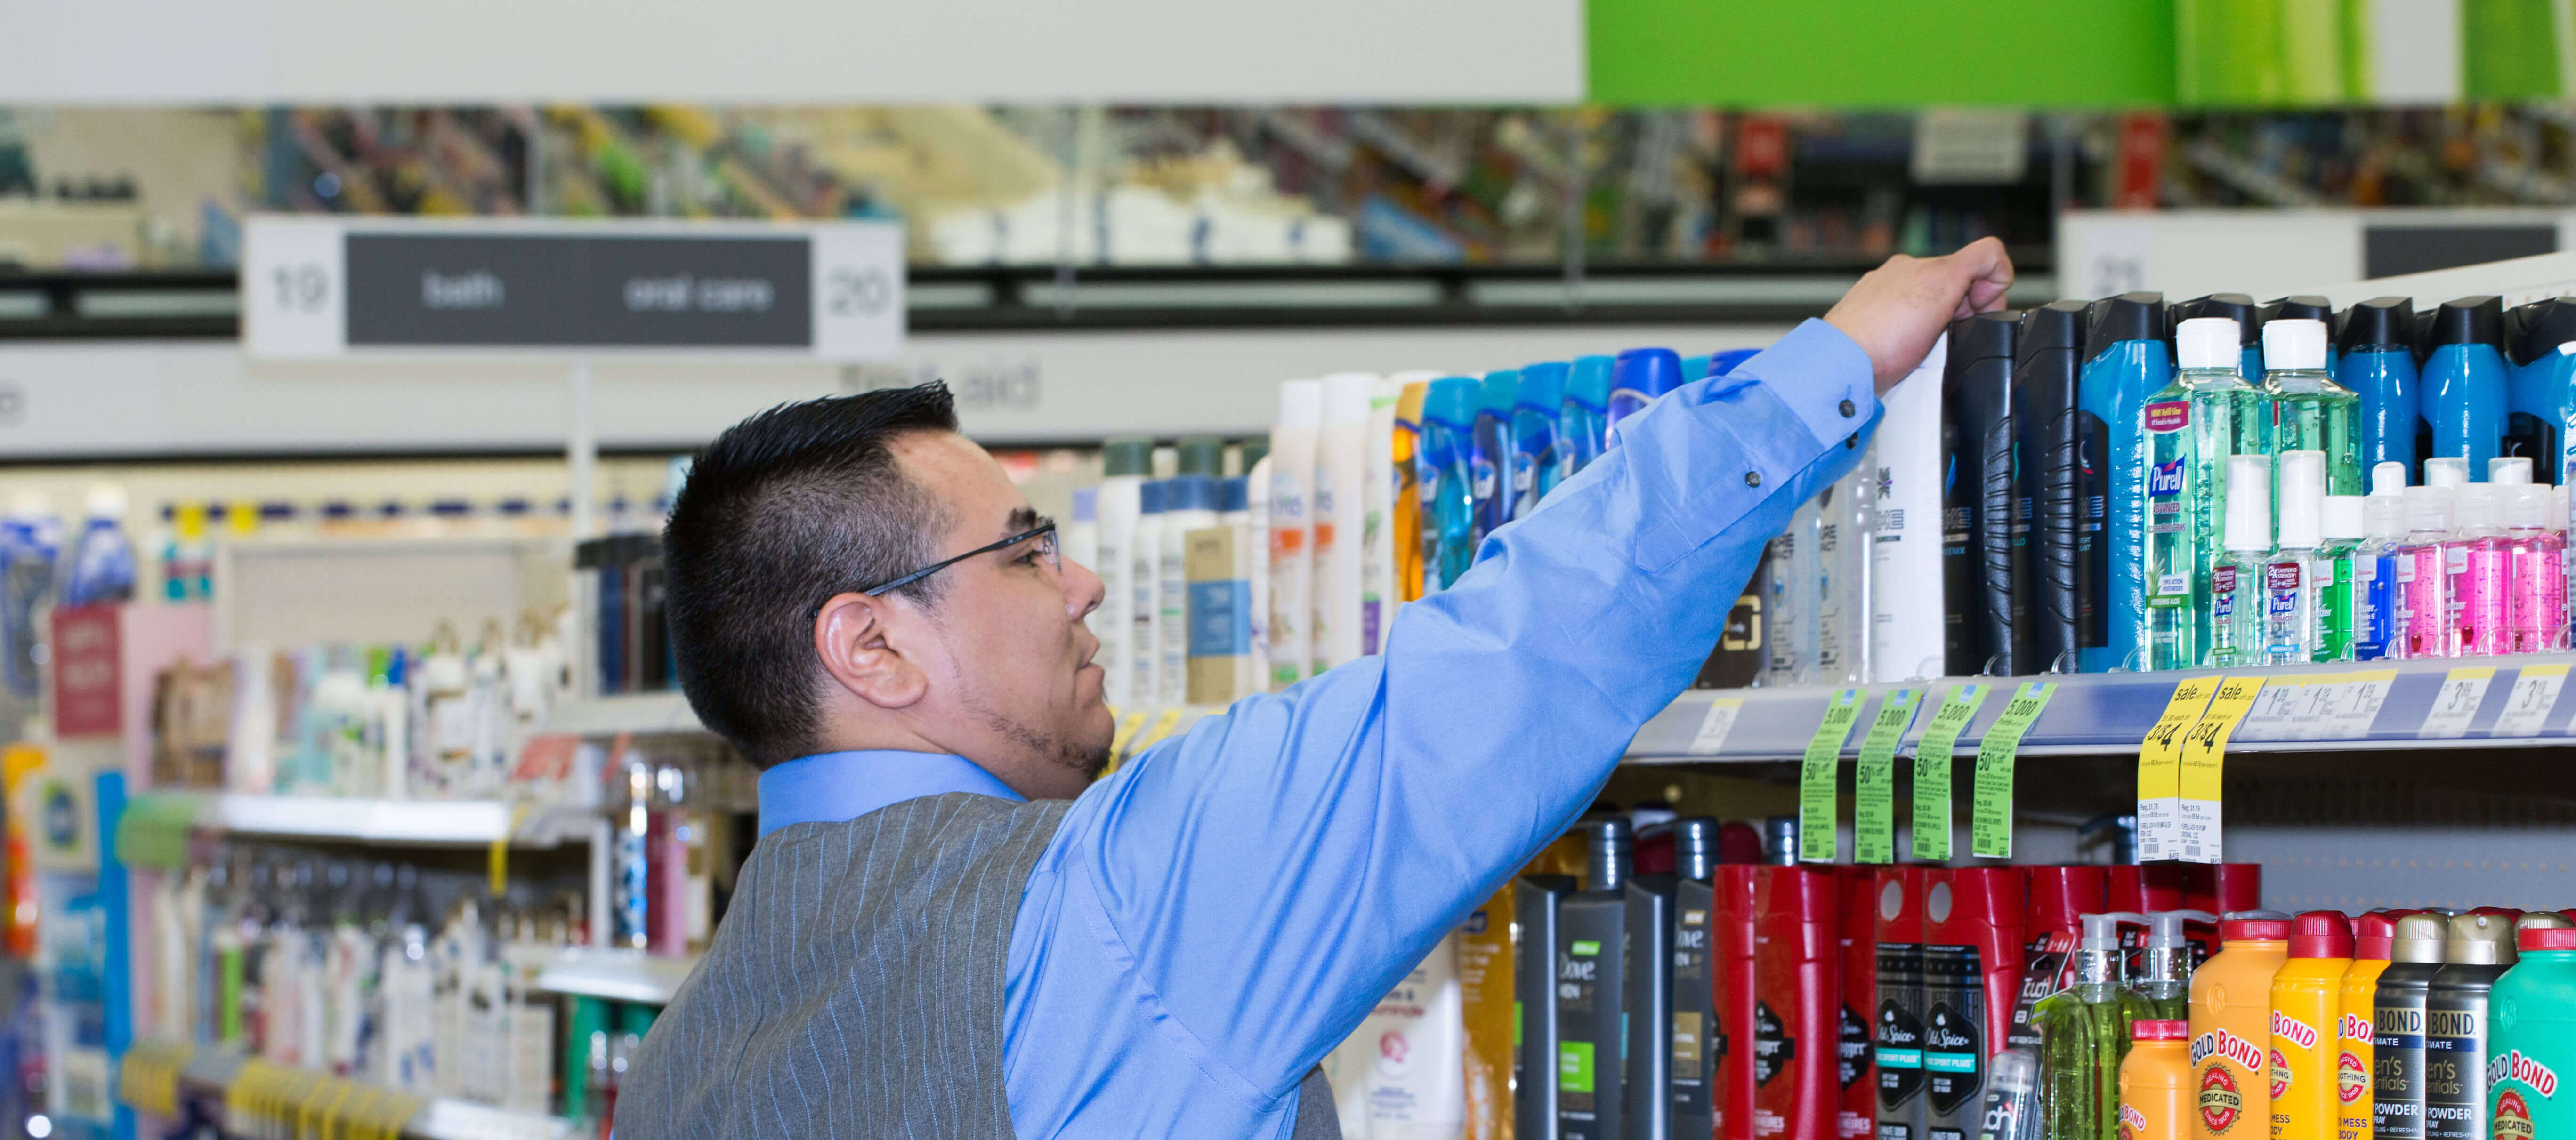 255f47e03 You'll have the tools and guidance available to lead team members and  support store management, giving you the opportunity to serve in a vital  role on our ...